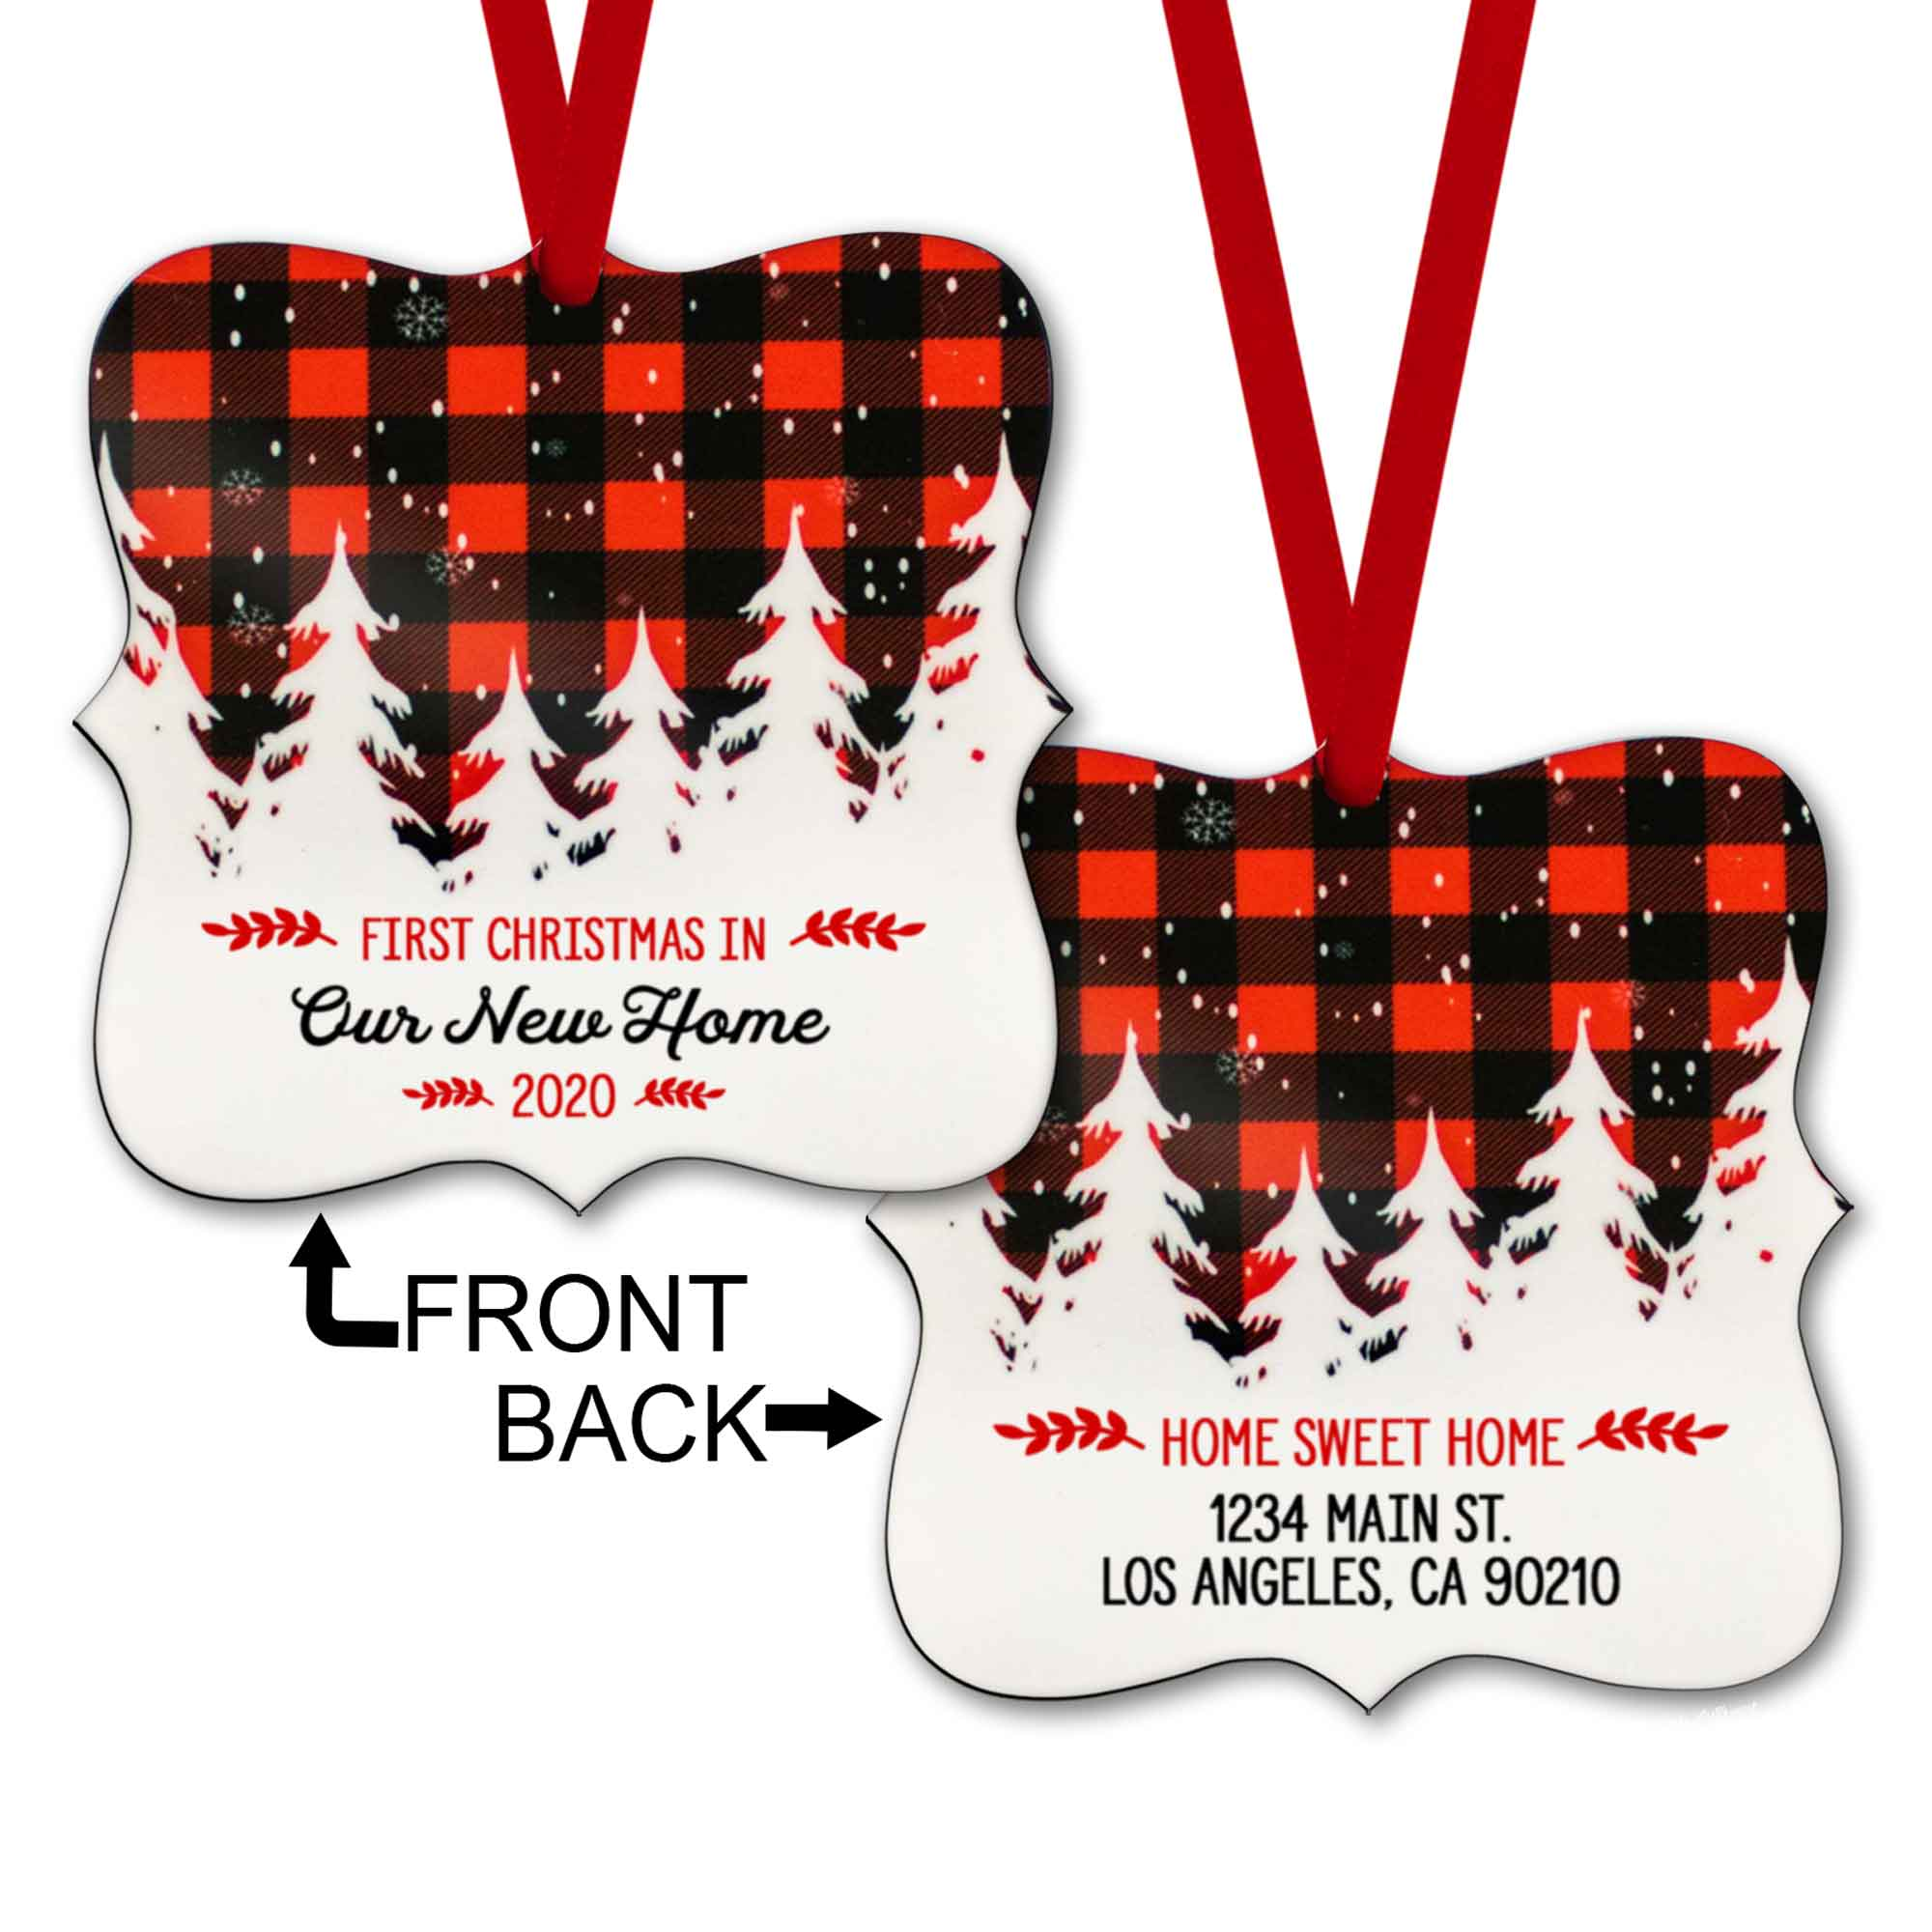 S502h-Copyright PaisleyGroveGIFTS-1-white Personalized Ornament First Christmas in our new home 2020 with home address buffalo plaid with red ribbon